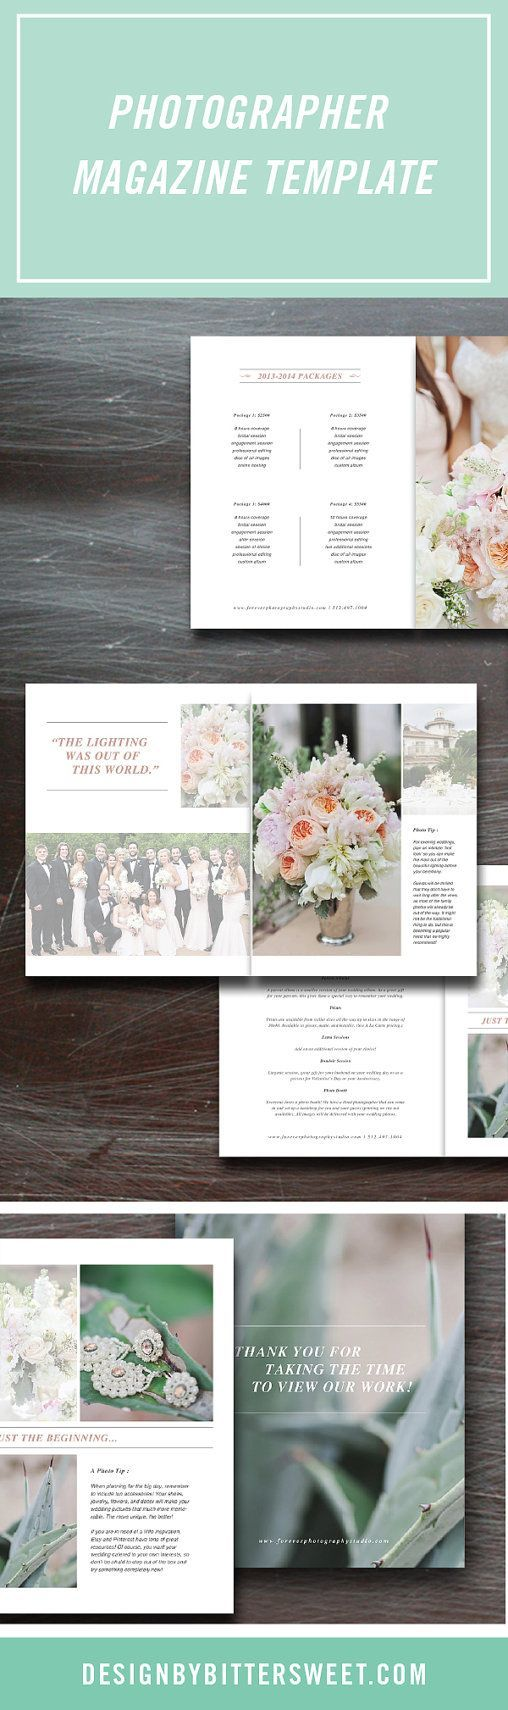 Wedding Collections Magazine | Collections magazine and Photoshop